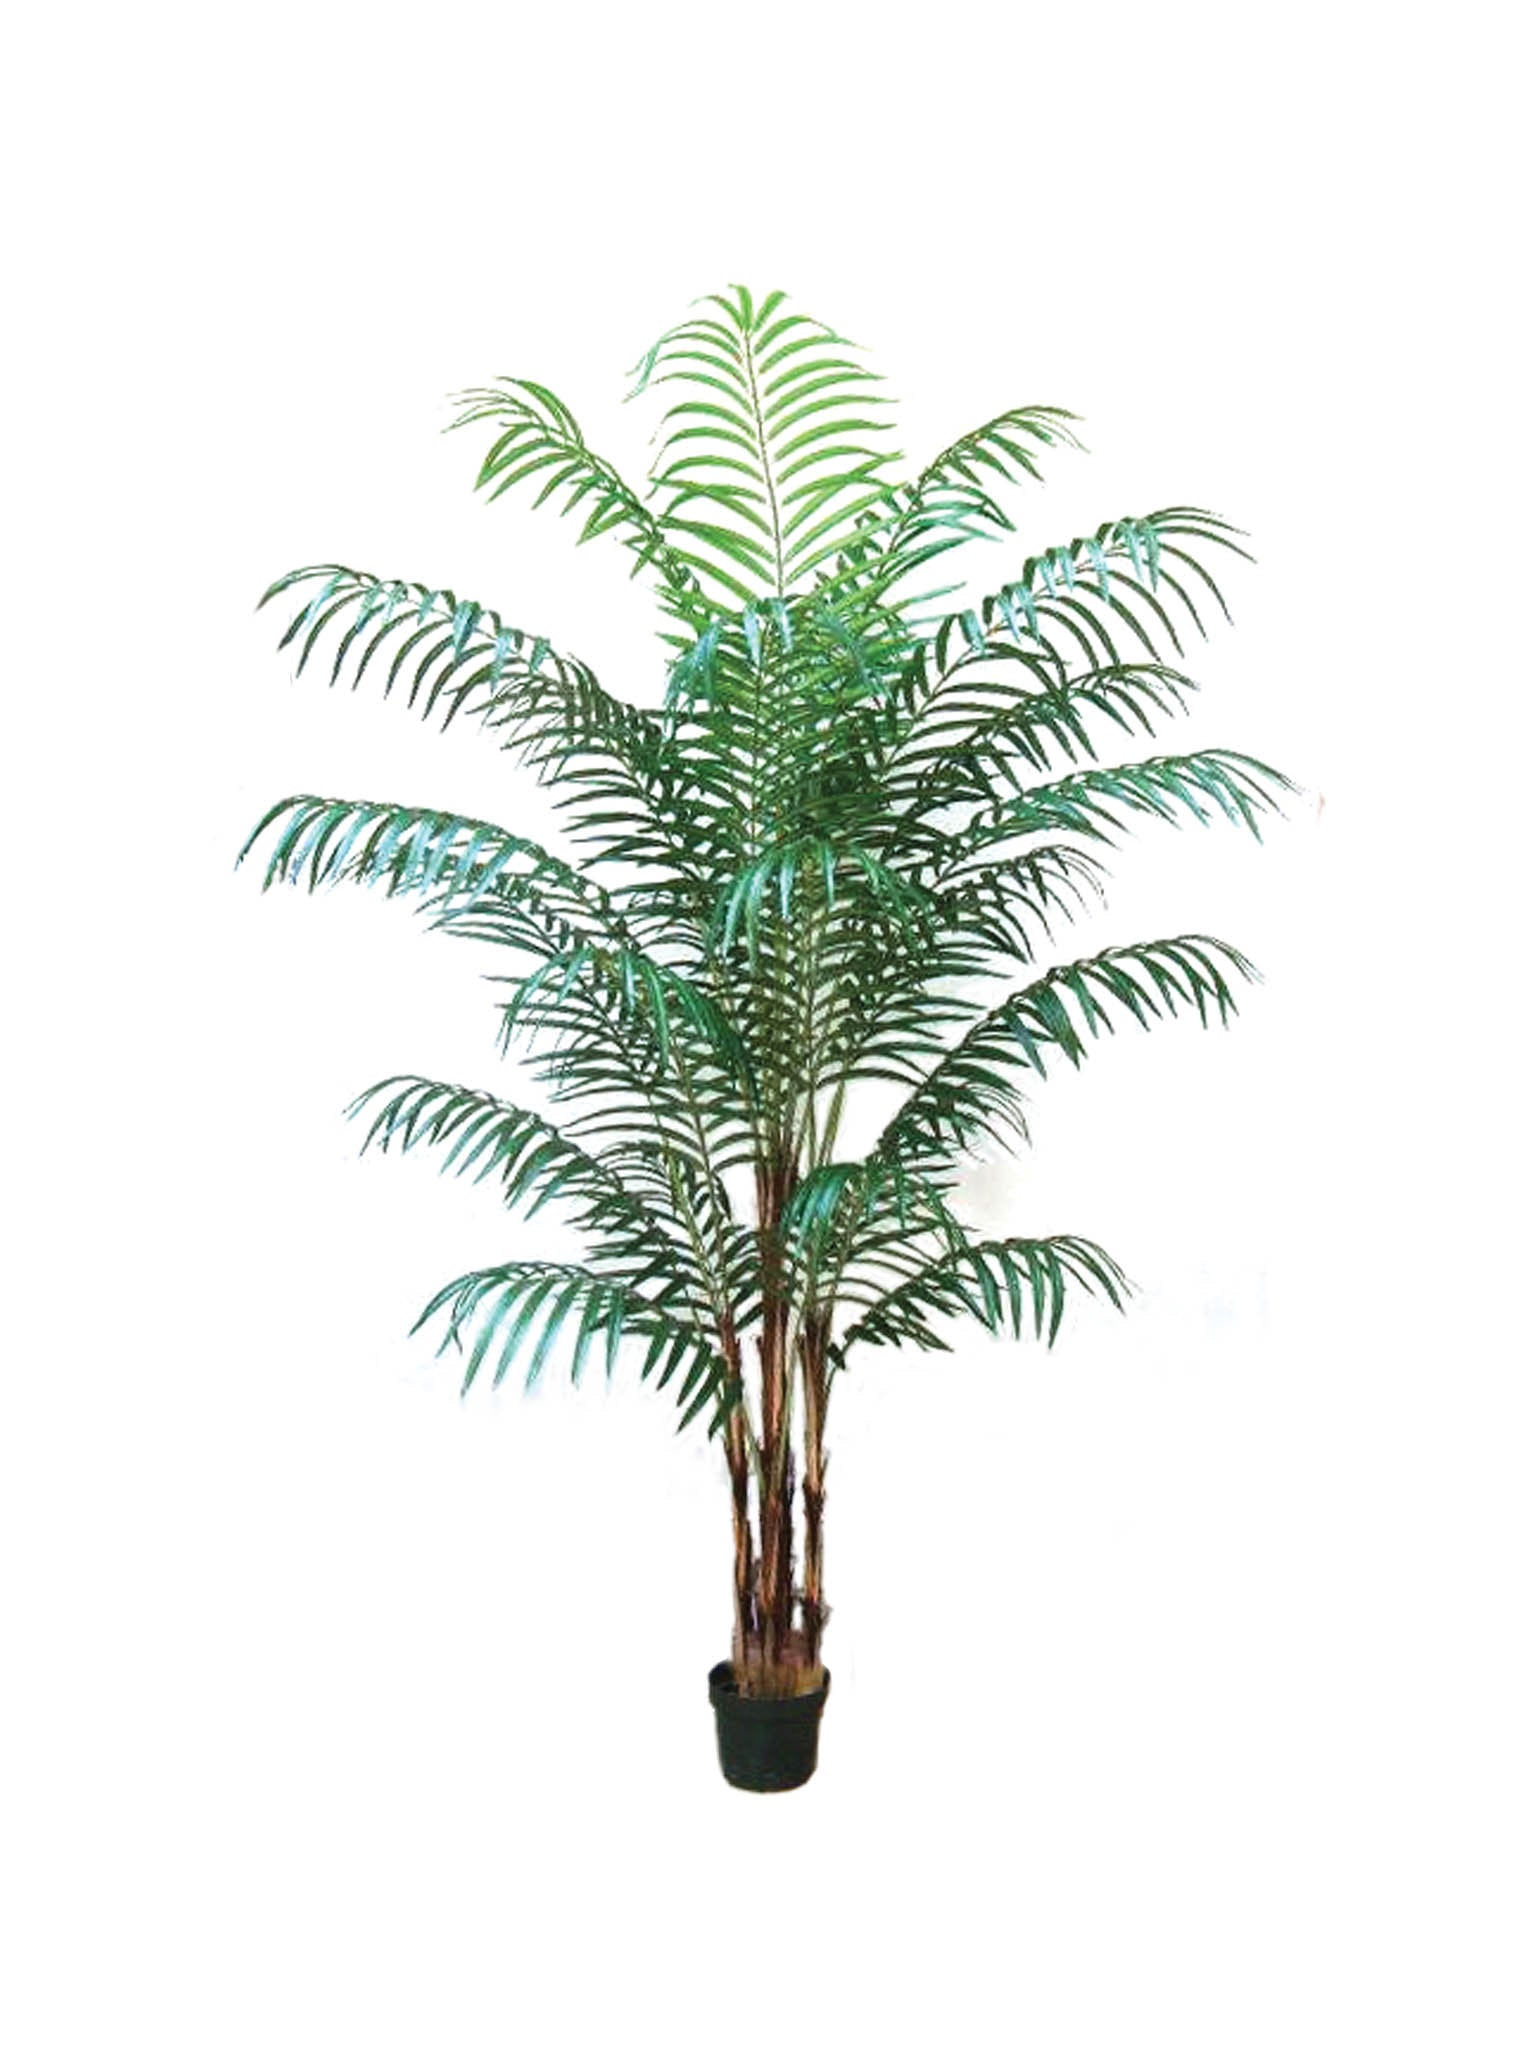 Areca Palm Tree 7' w 22 Fronds